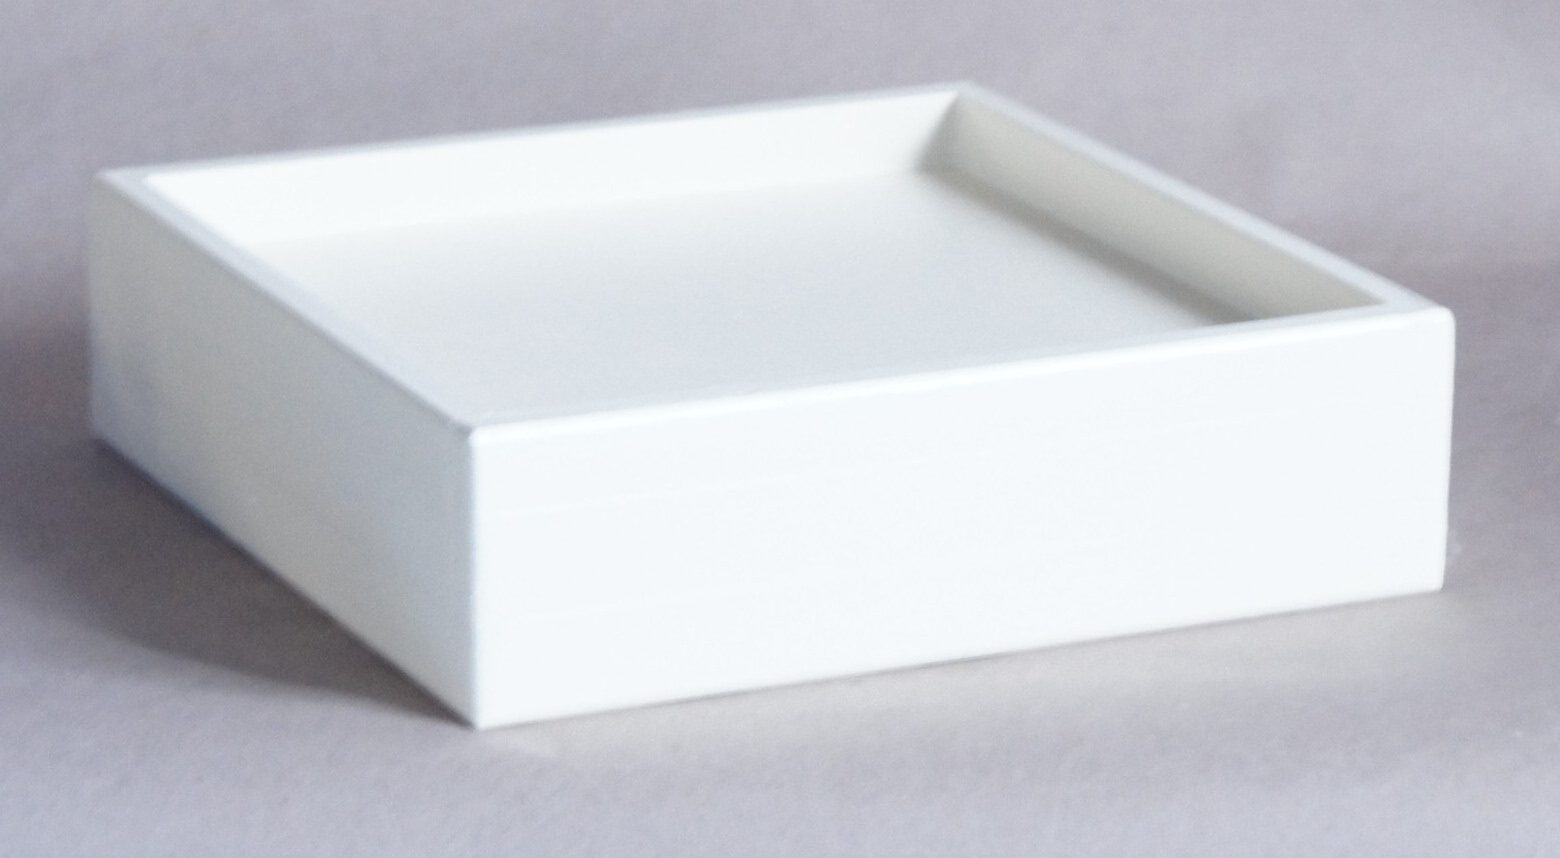 9x9 Pocket, 2 Inch Lift Height, White Antique